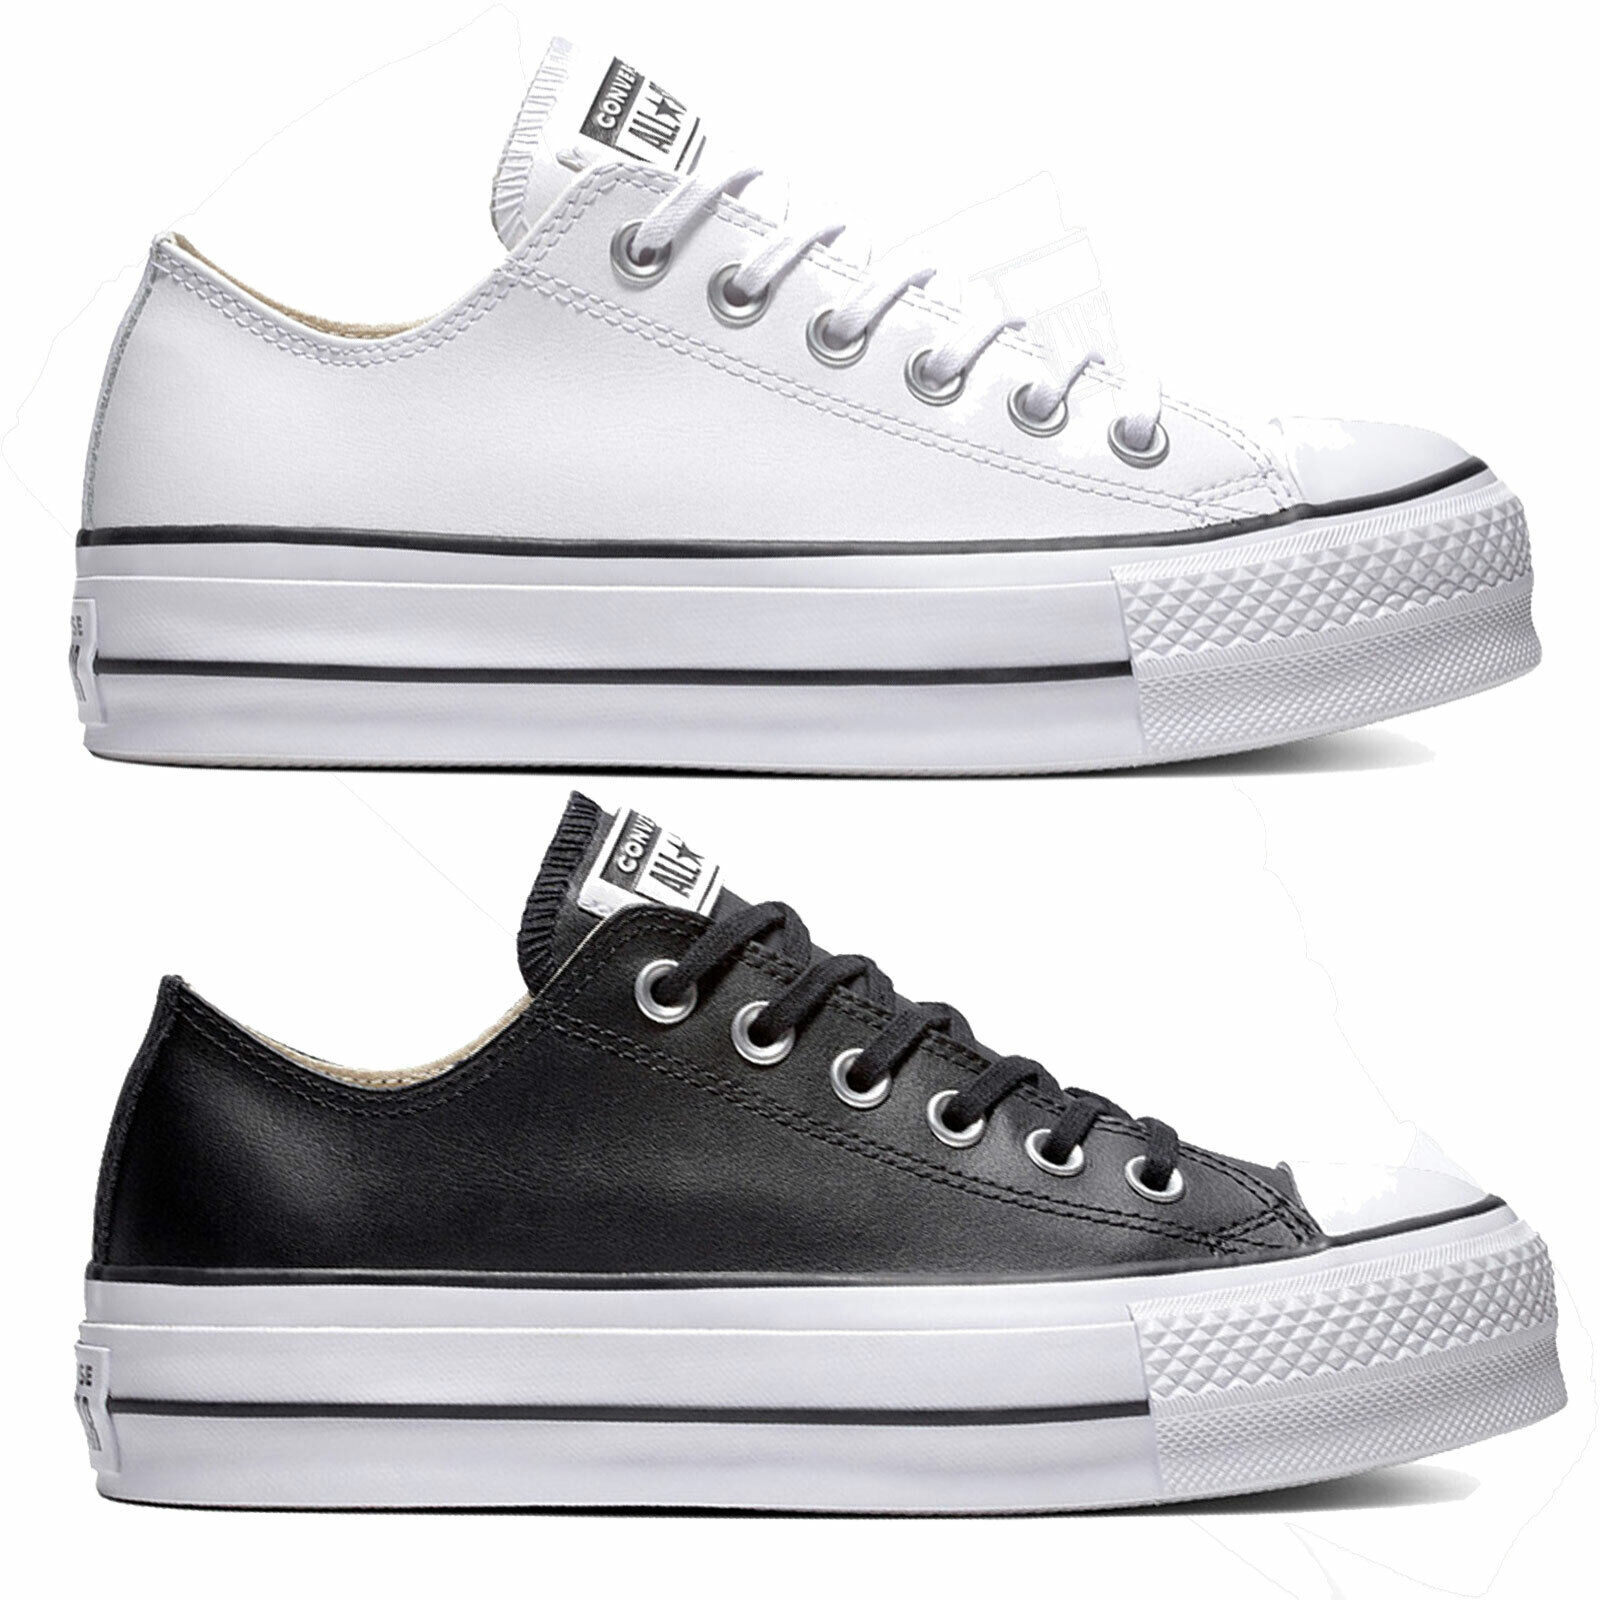 Converse Chuck Taylor all Star Lift Clean Ox Leather Women's Sneakers Trainers